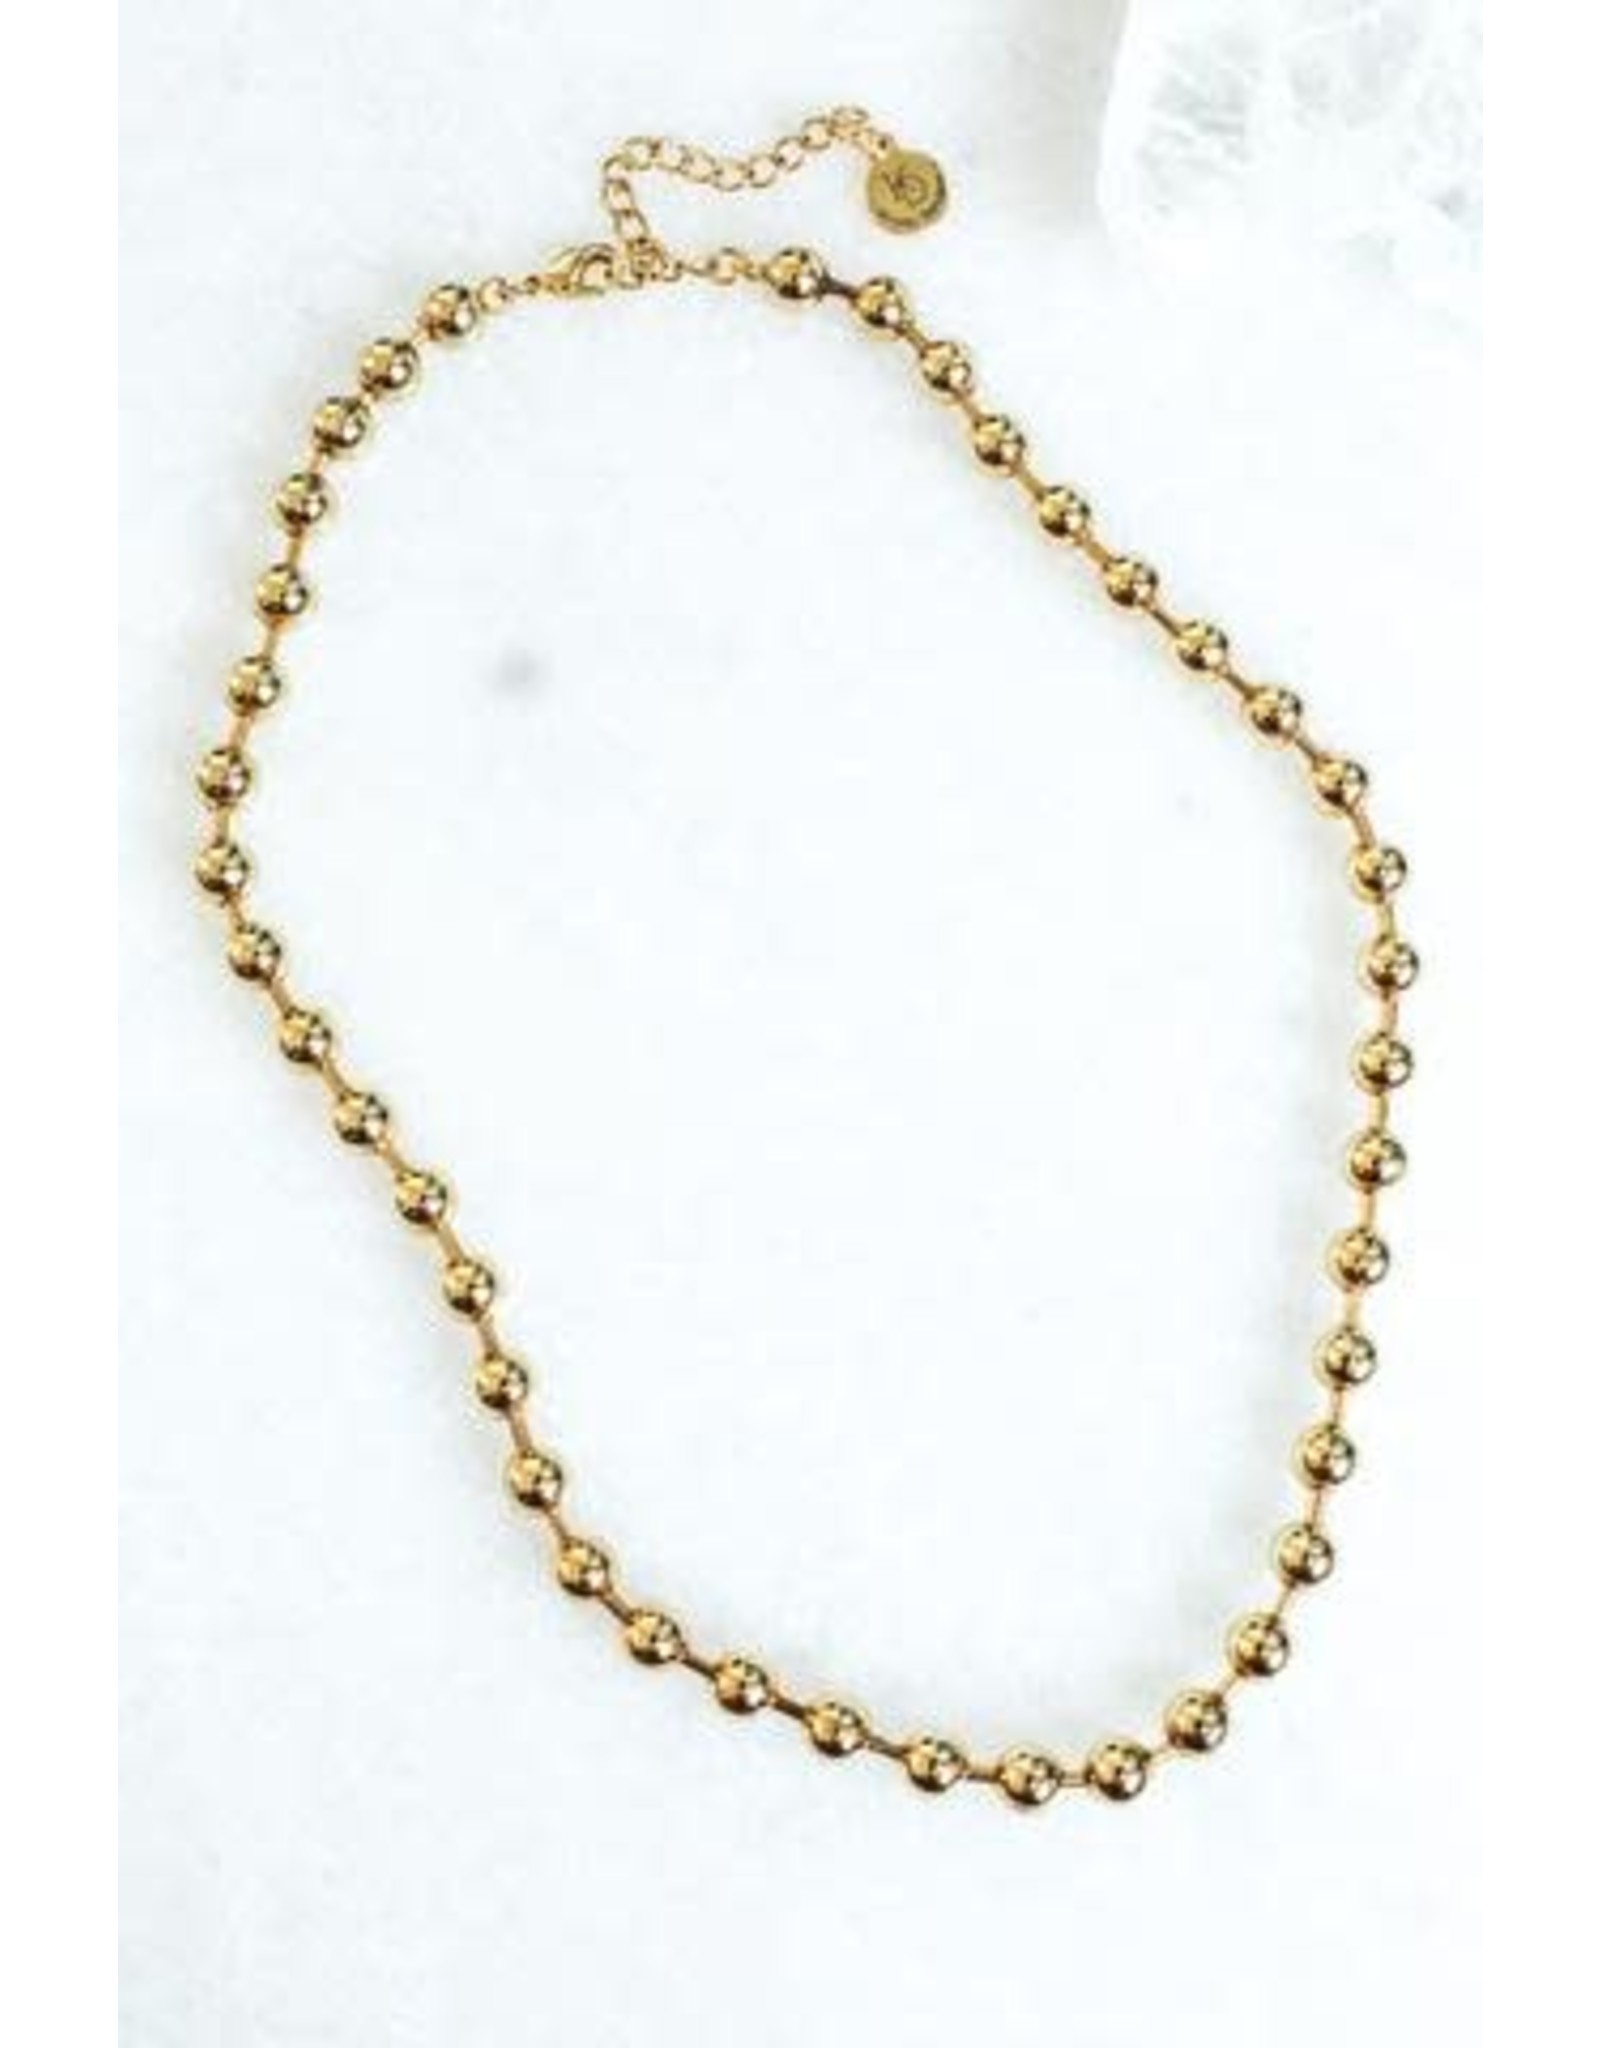 KINSEY DESIGNS REVEL GOLD BALL NECKLACE